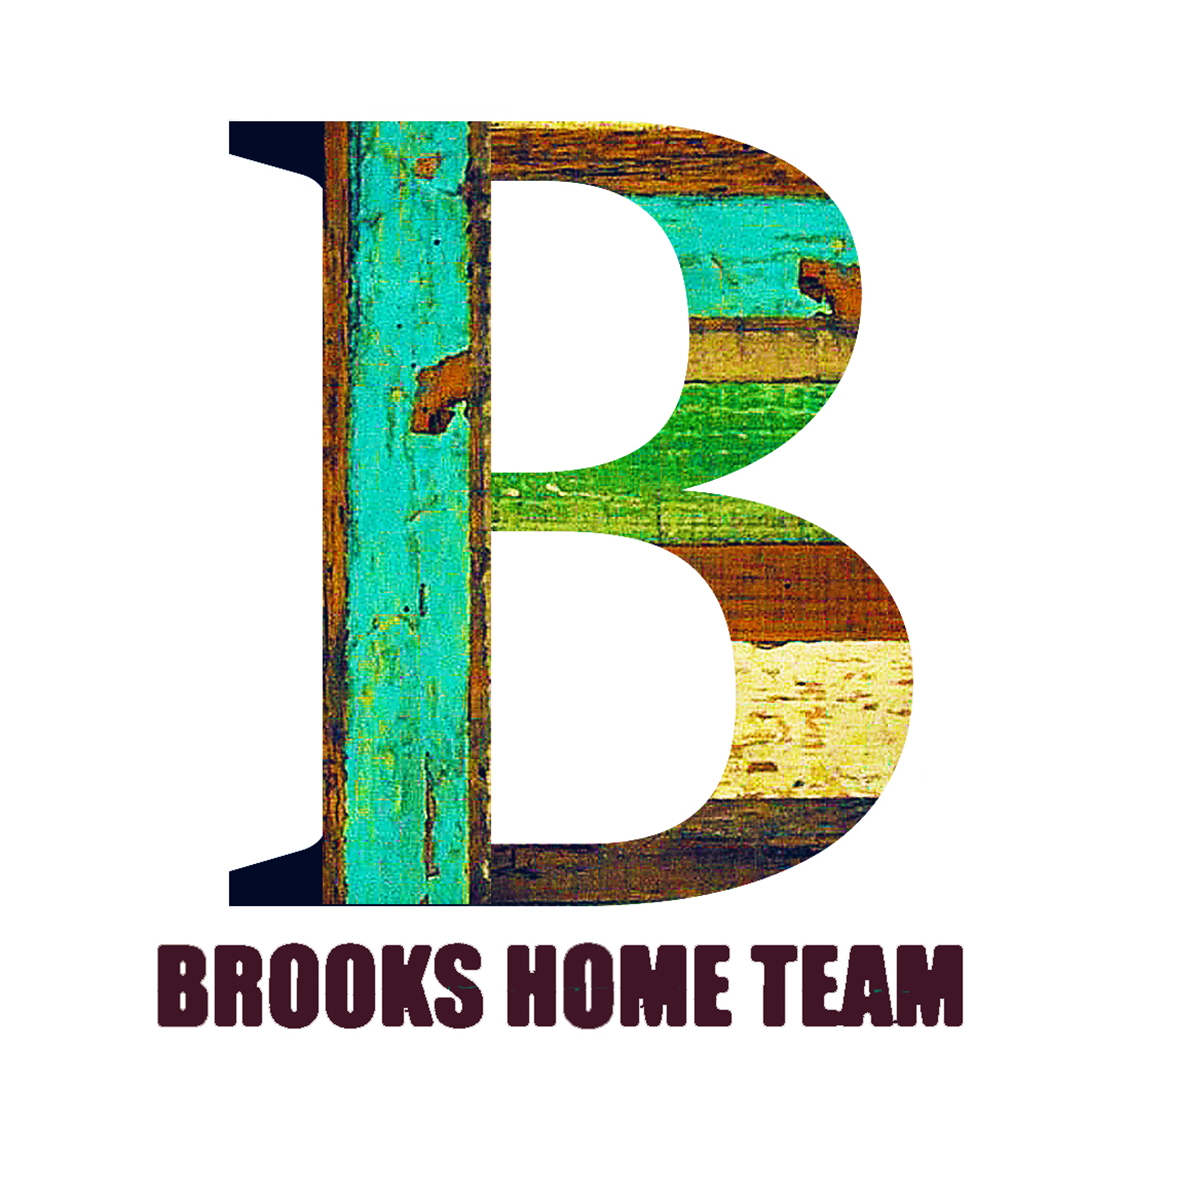 Brooks Home Team - It matters who you trust